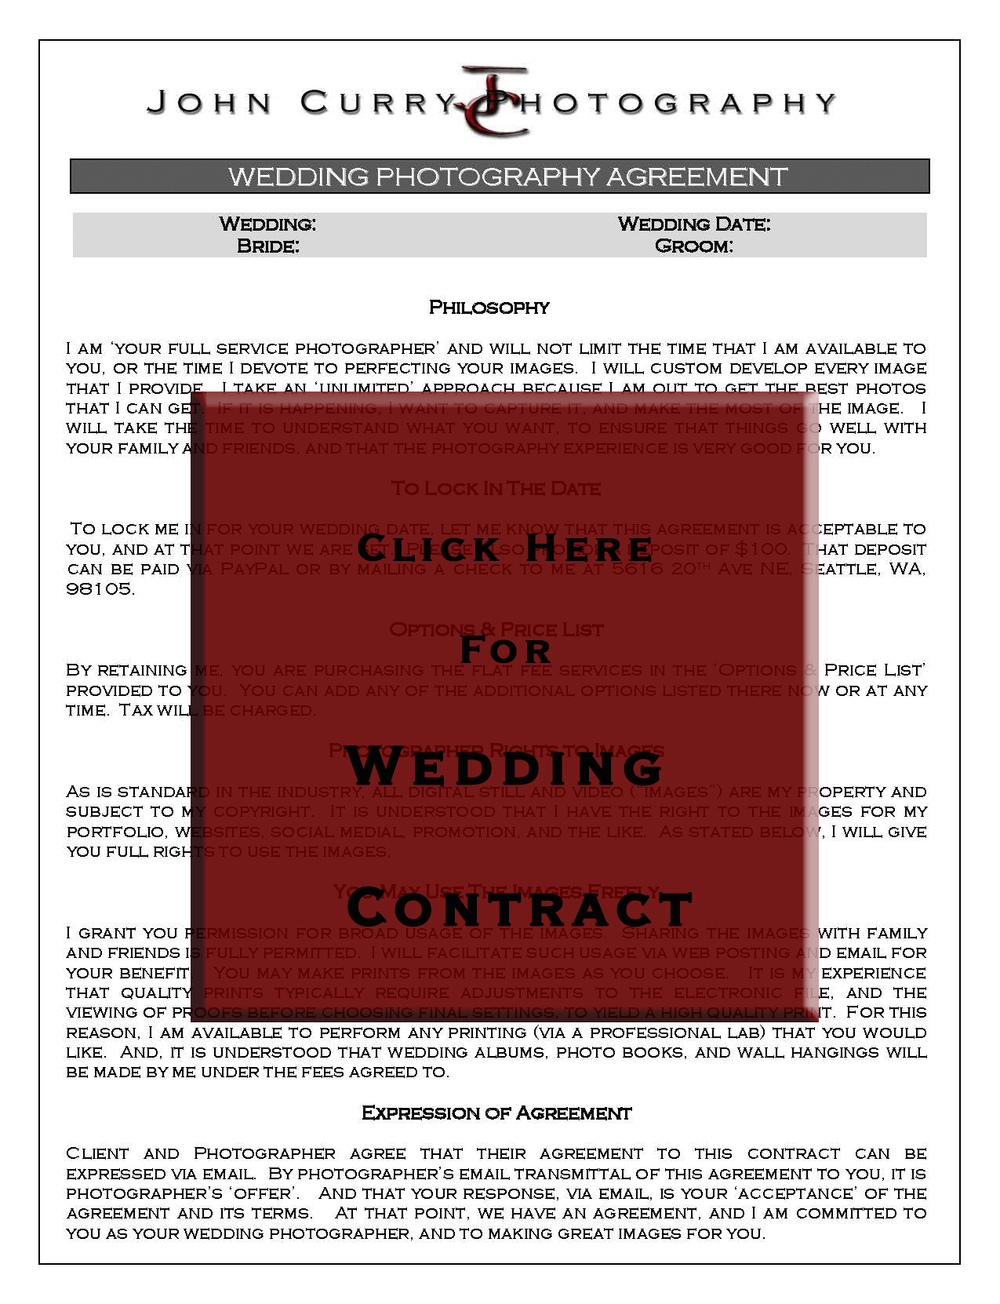 Wedding Photography Contract.jpg